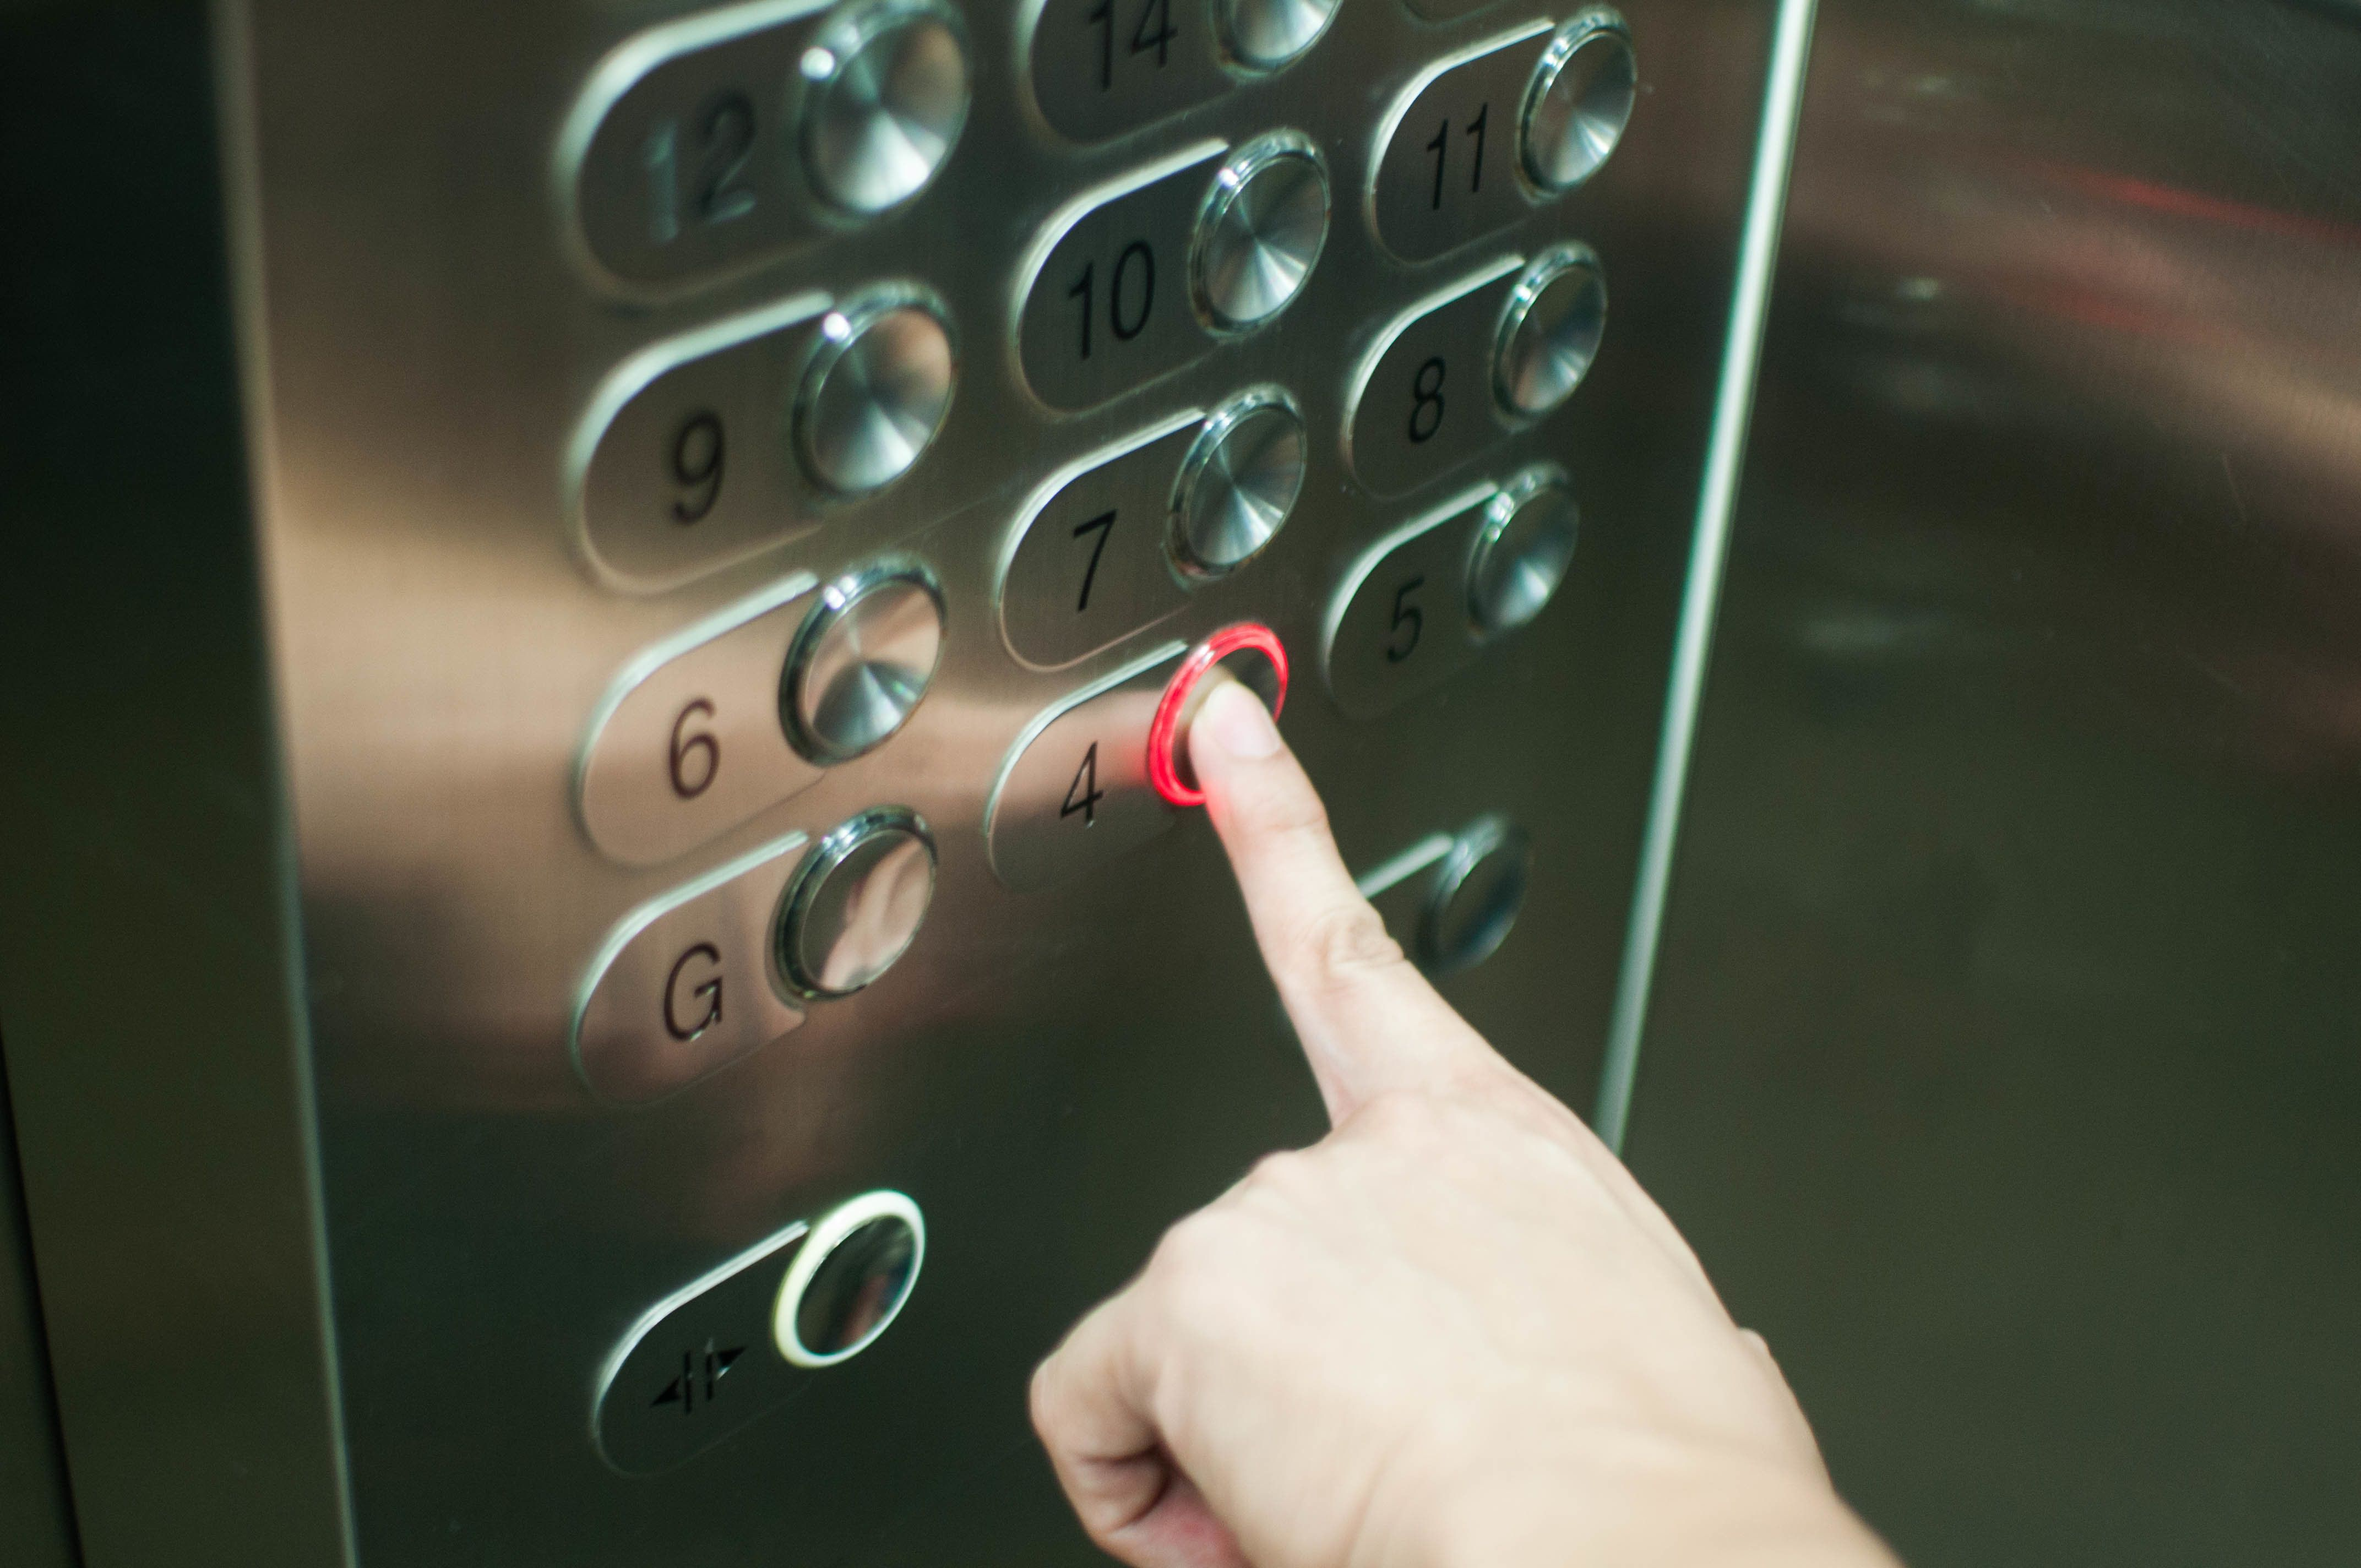 Woman Freed After Being Stuck In Elevator For 3